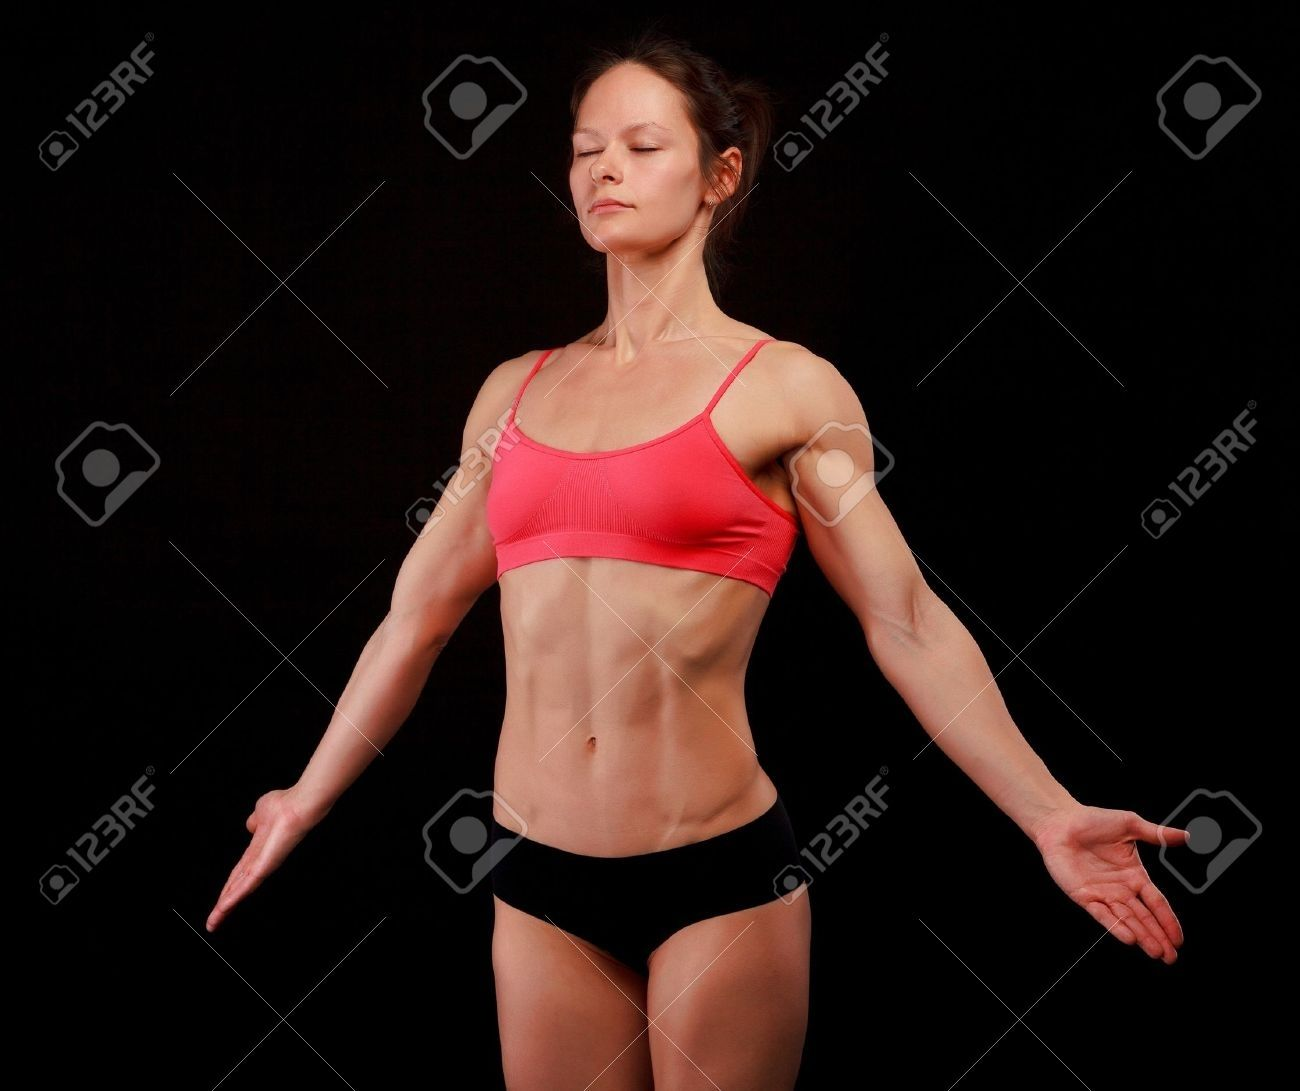 Abdominal Muscle Anatomy Female Abdominal Muscle Anatomy Female